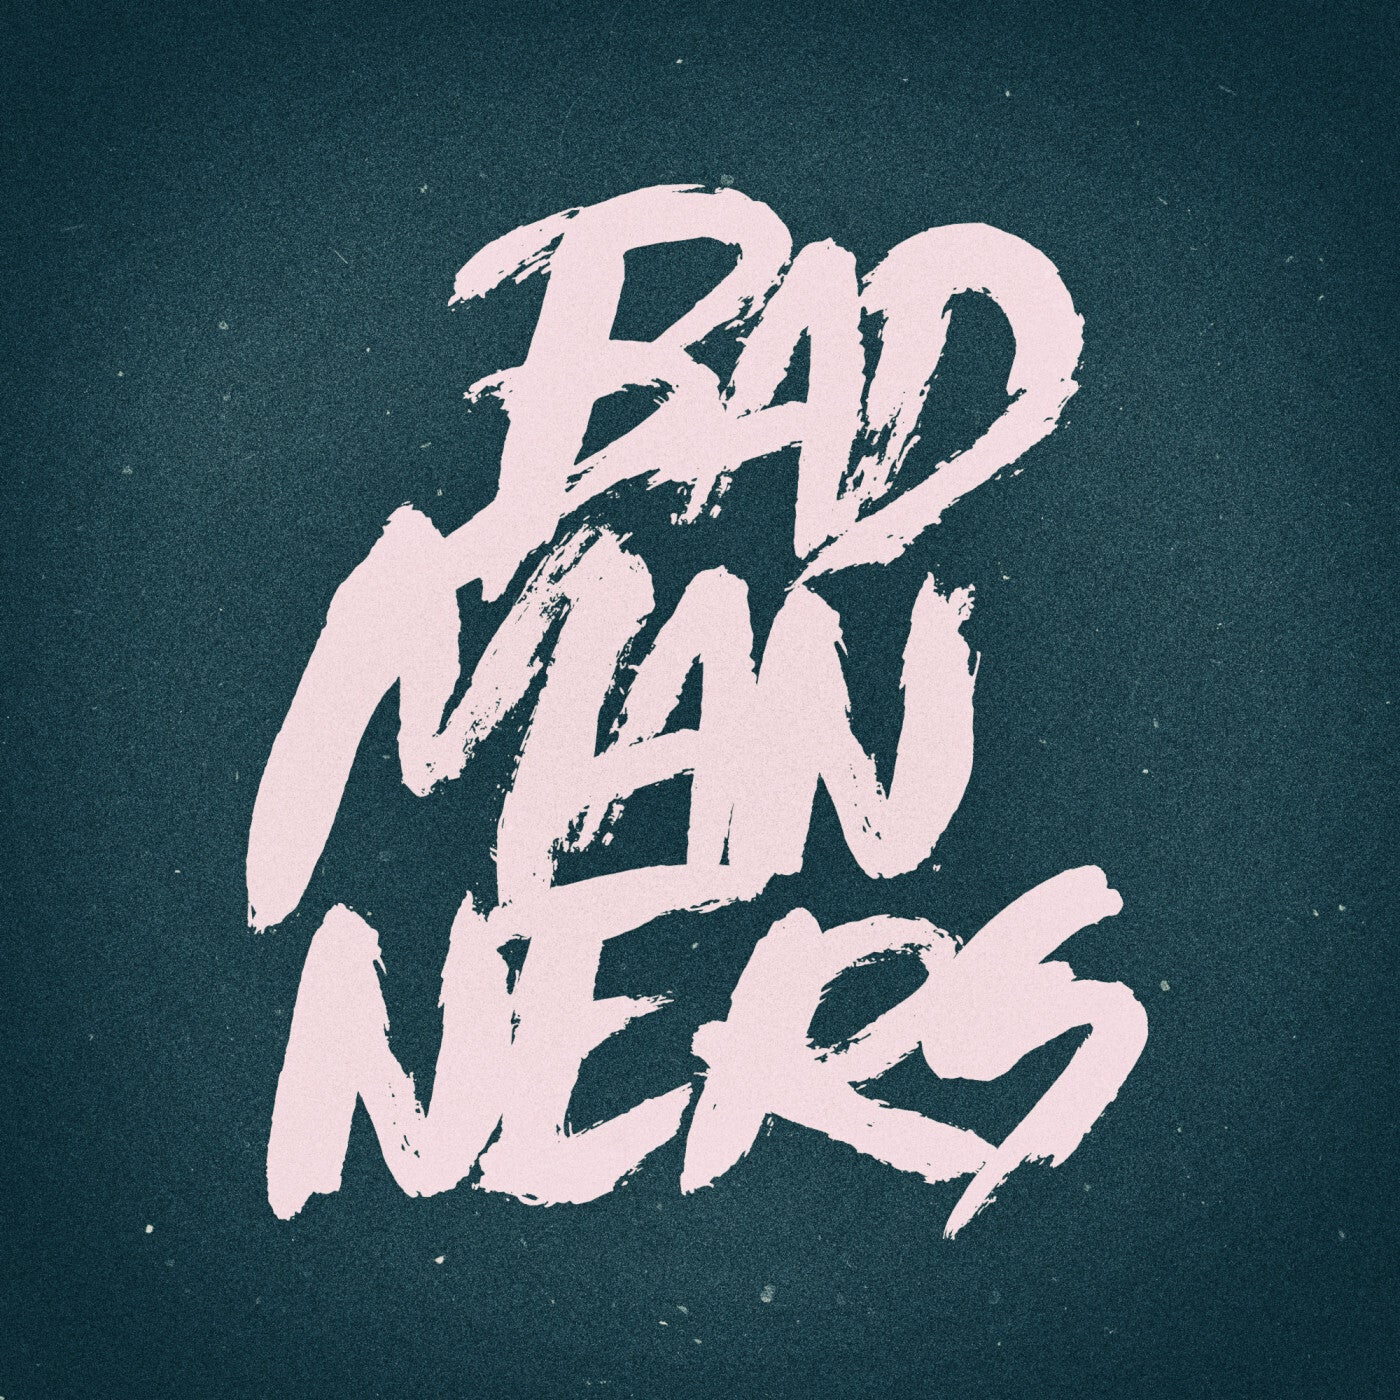 Bad Manners (Original Mix)